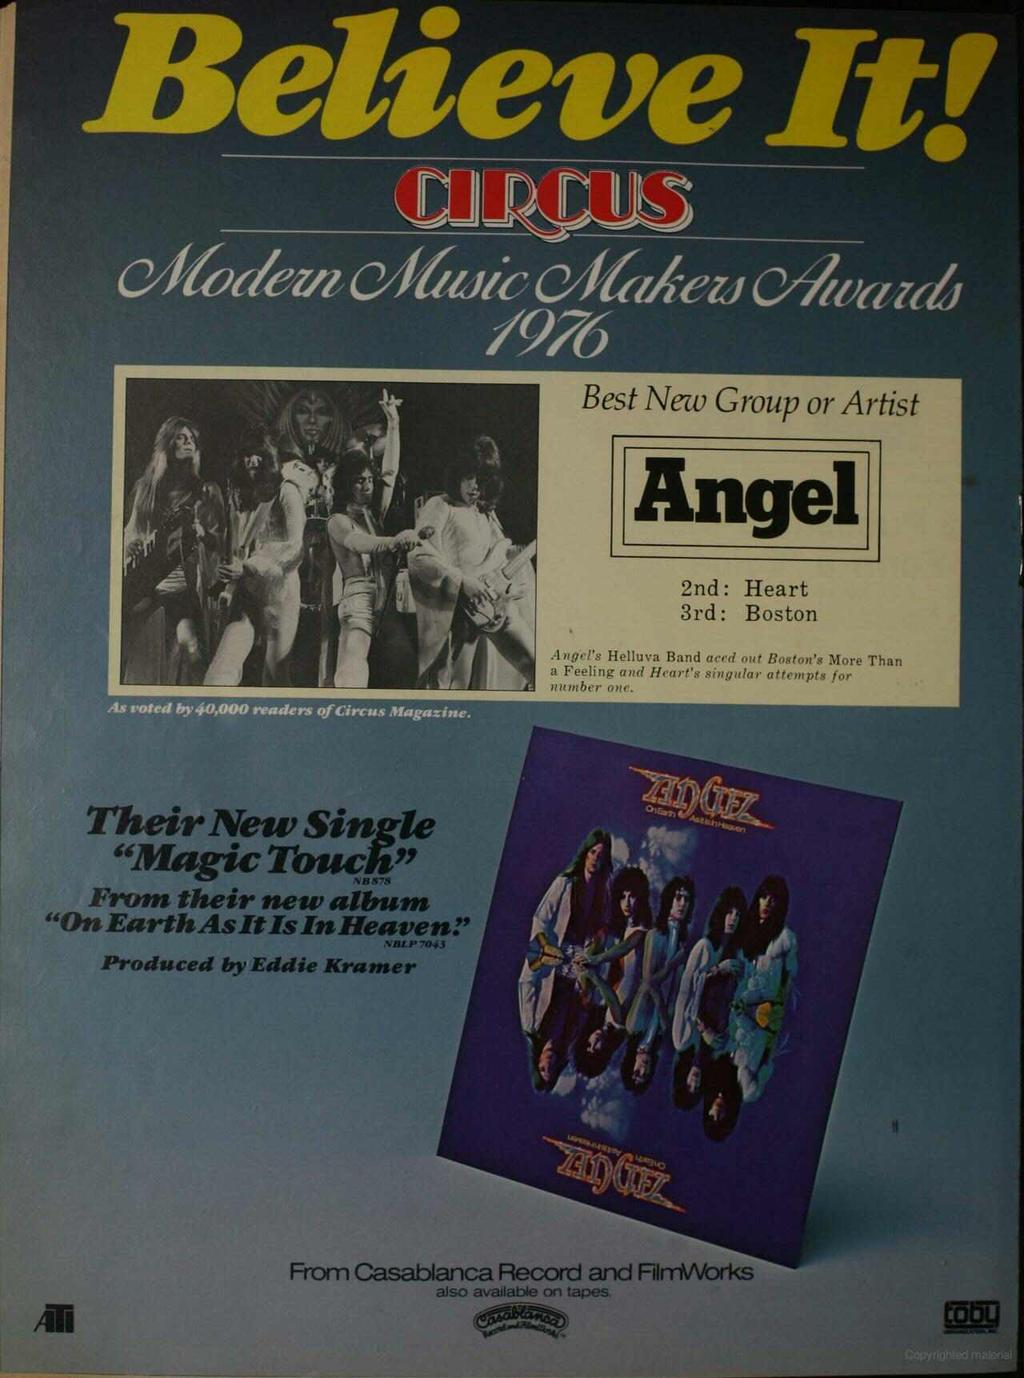 Best New Group or Artist 2nd : Heart 3rd: Boston As voted by40,000 readers of Circus Magazine.